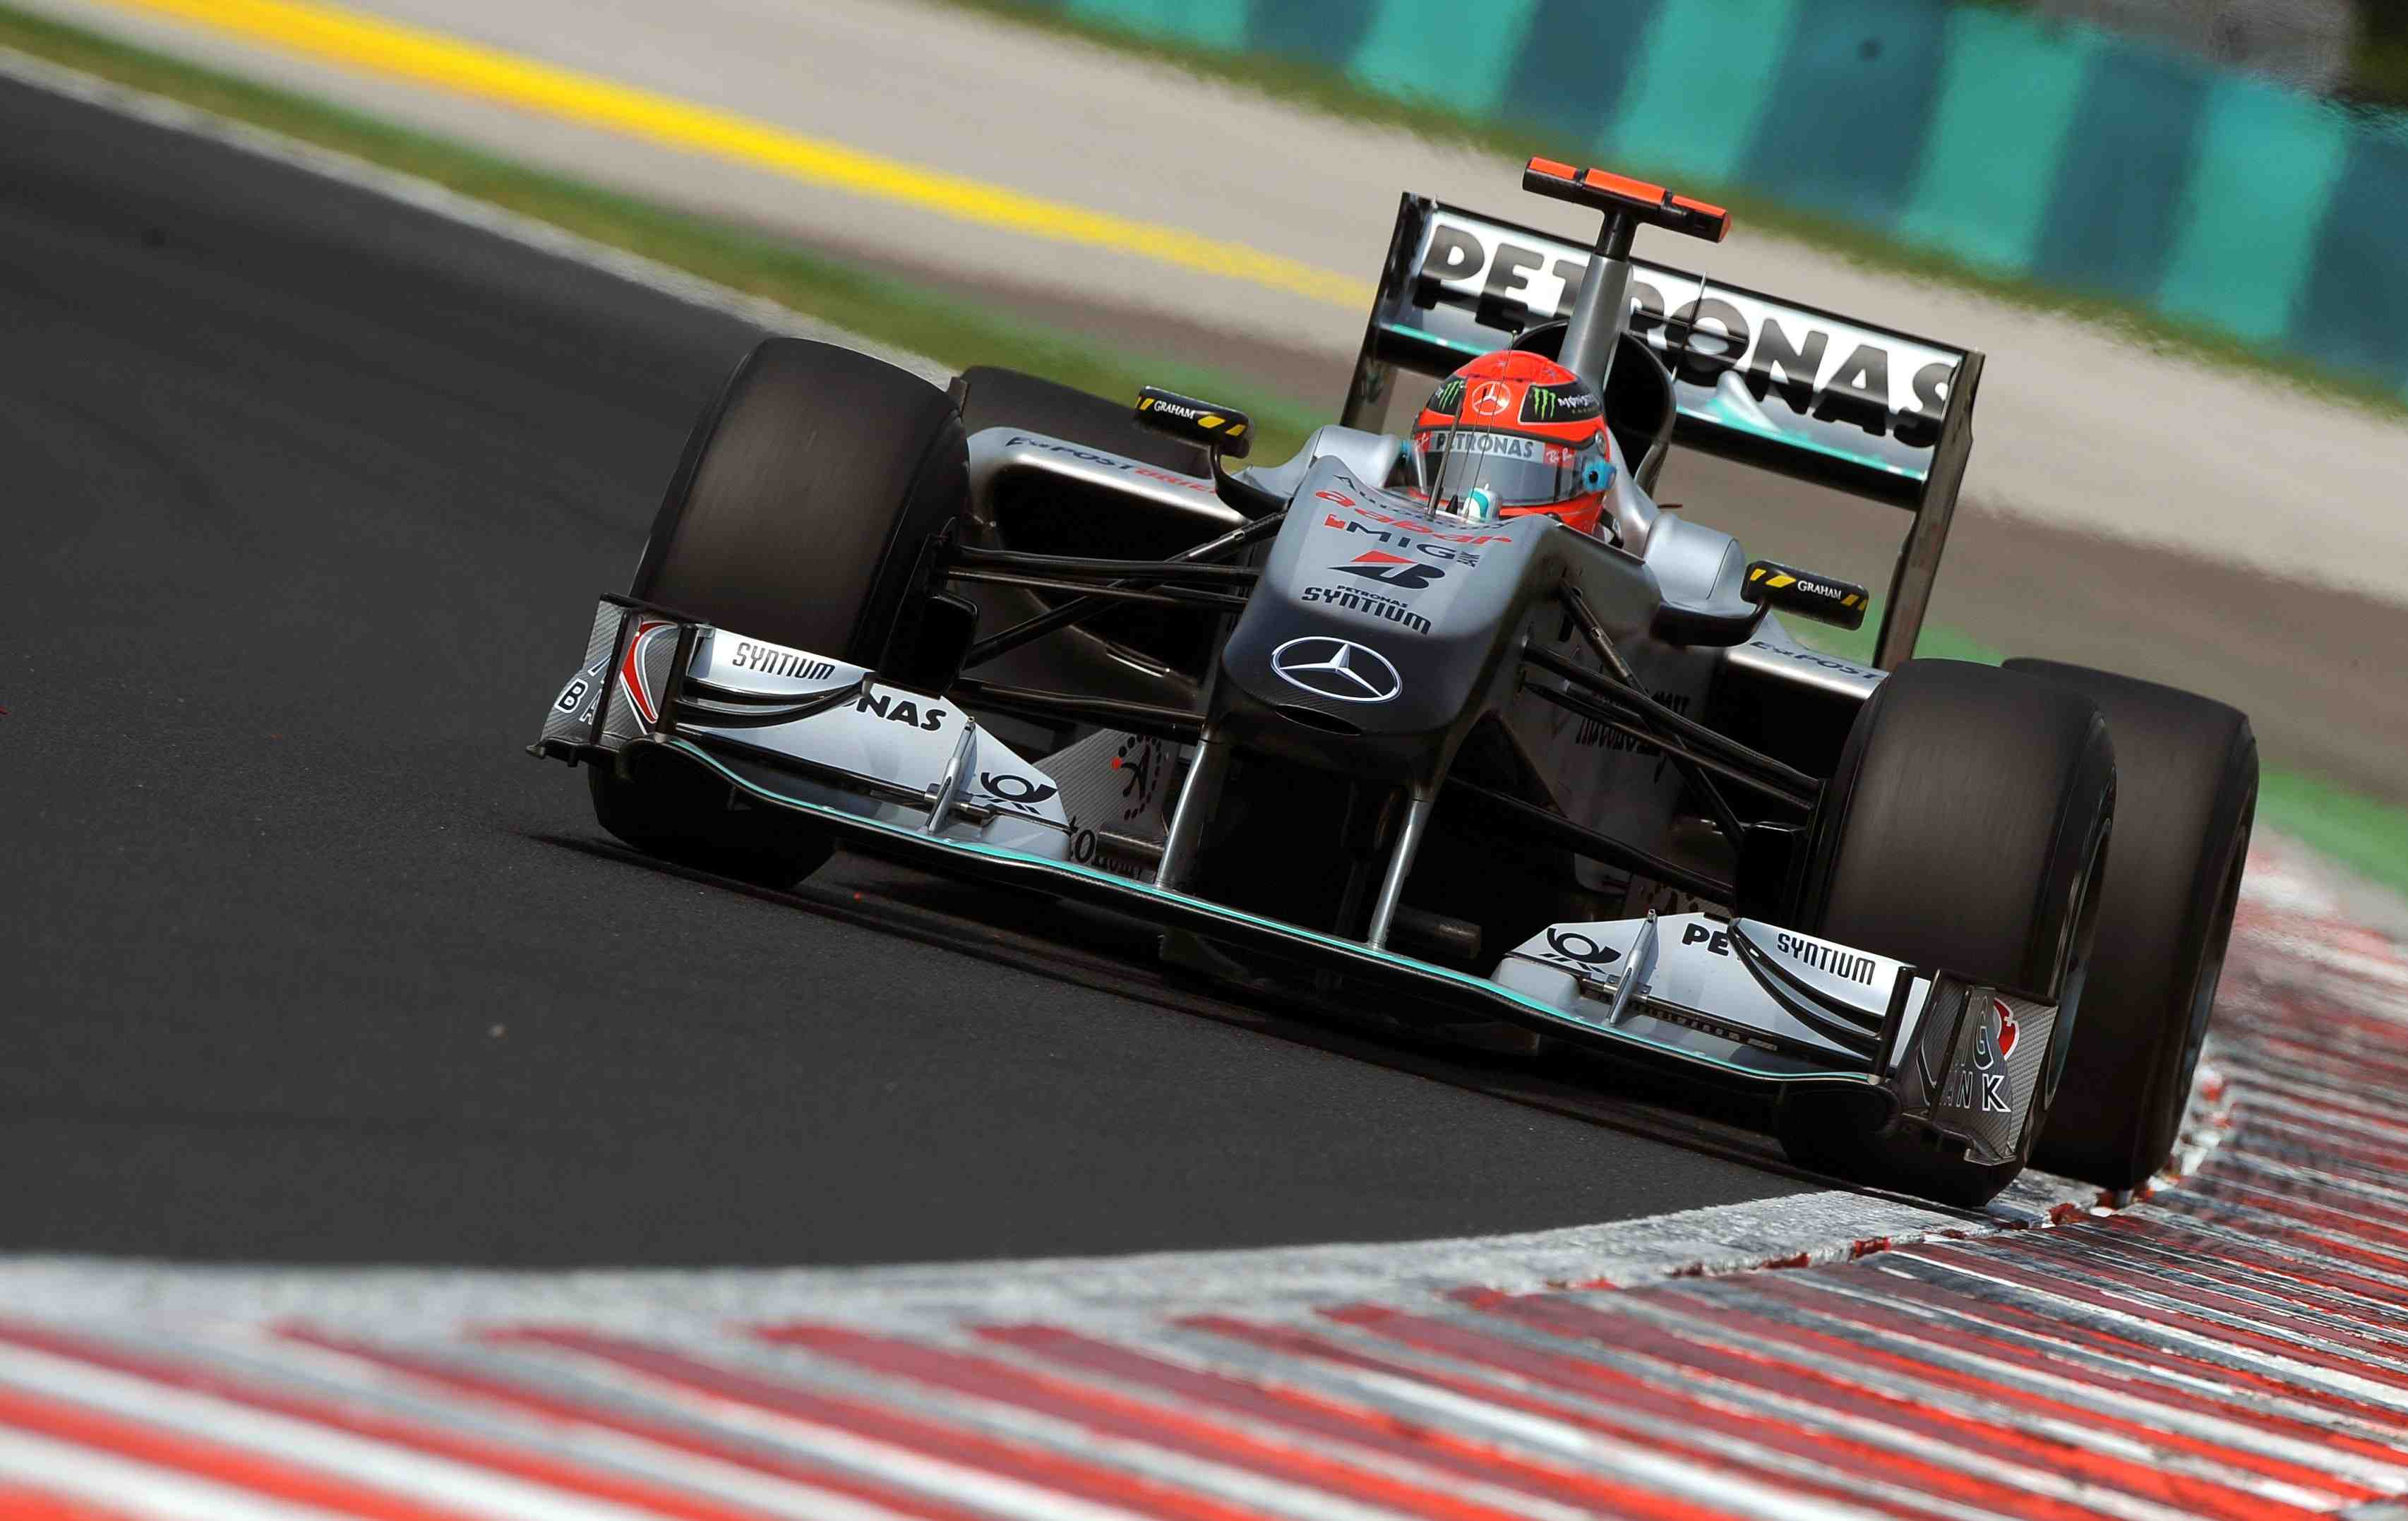 Schumacher penalised for 'crazy' move